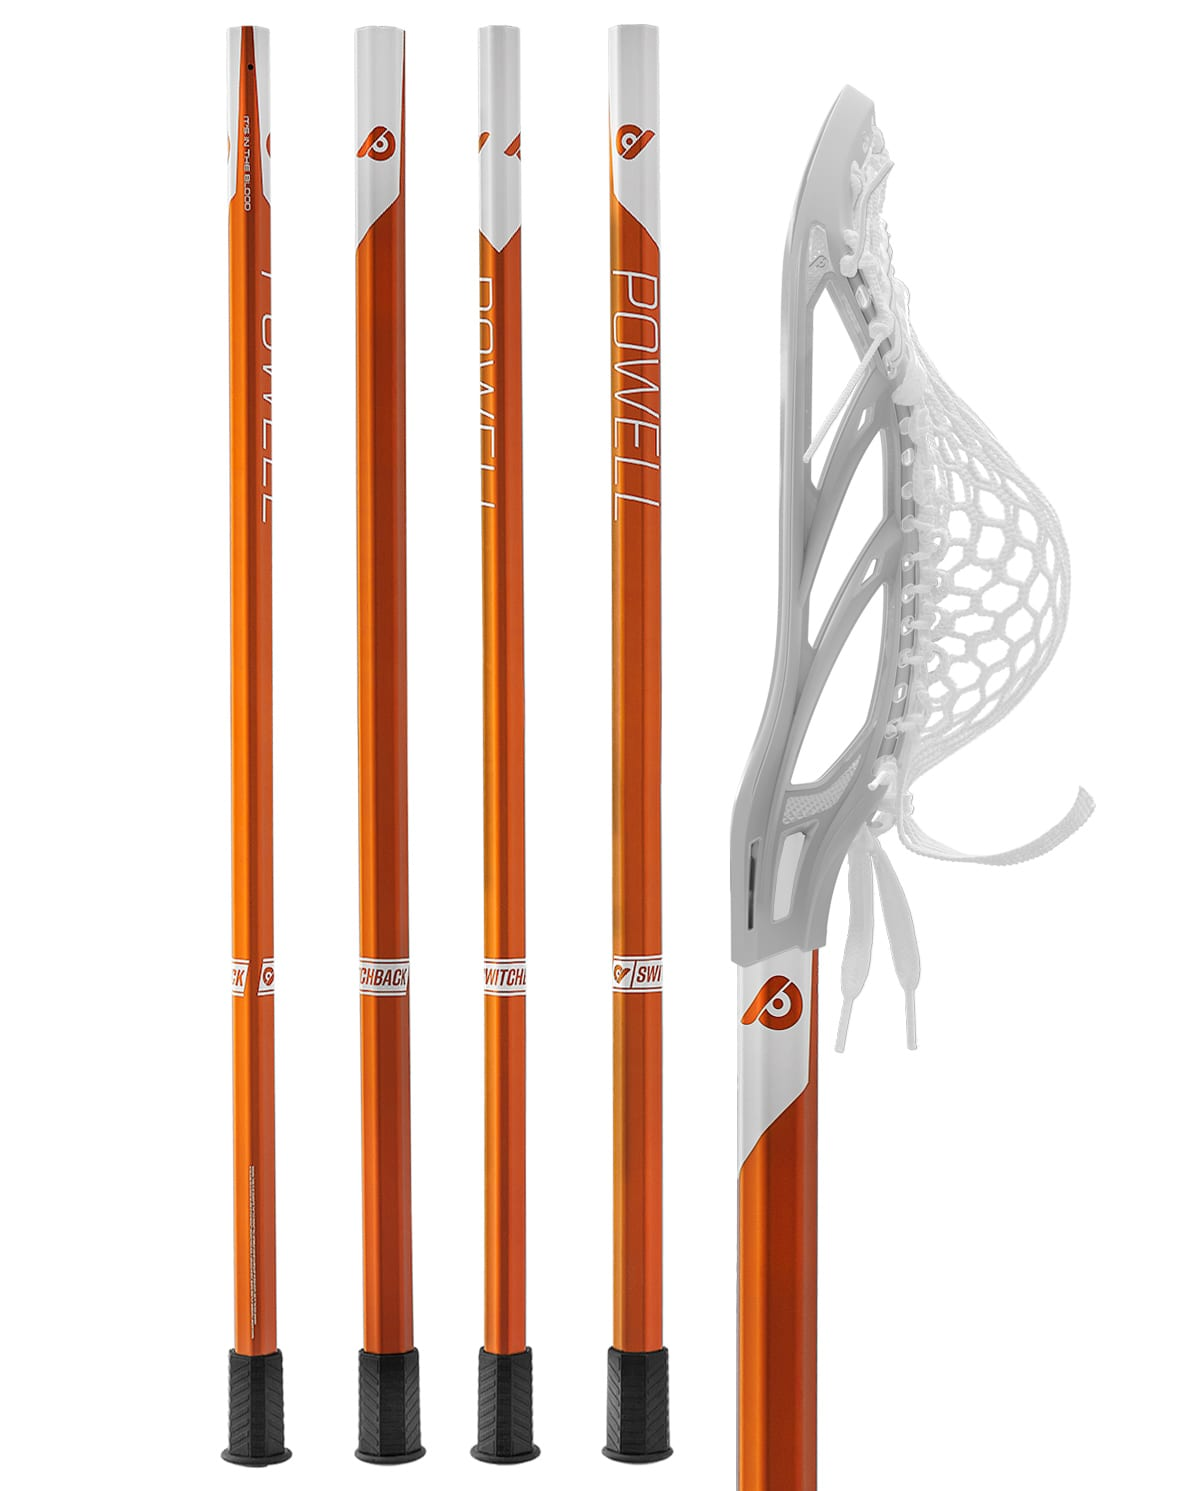 Switchback Complete Lacrosse Sticks